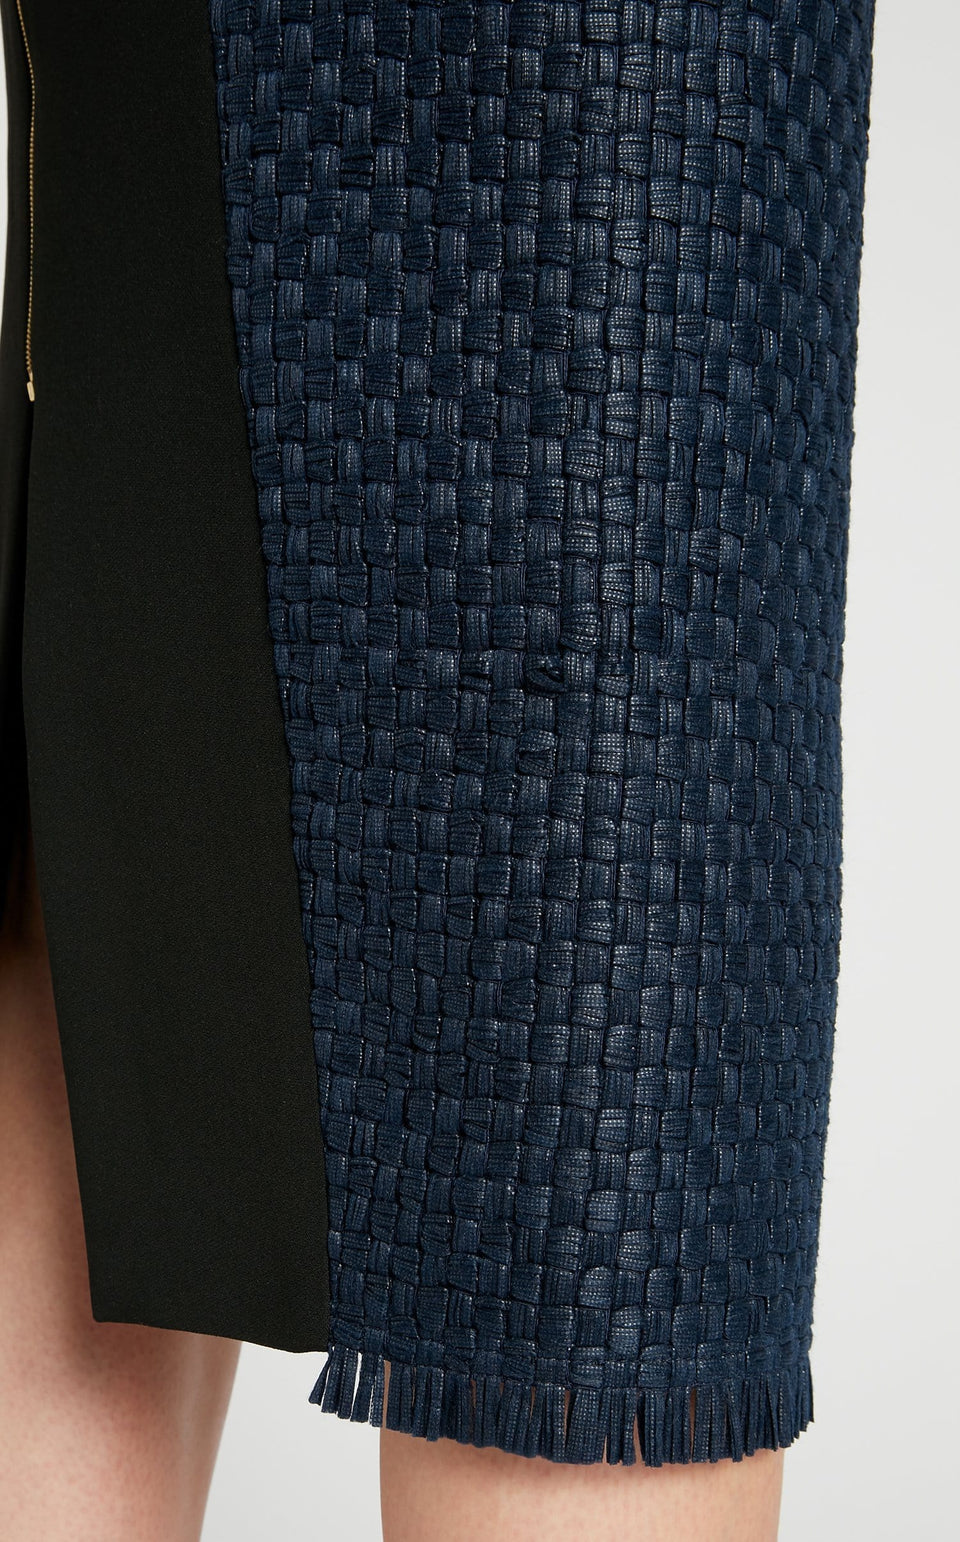 Turnley Skirt In Navy/Black from Roland Mouret